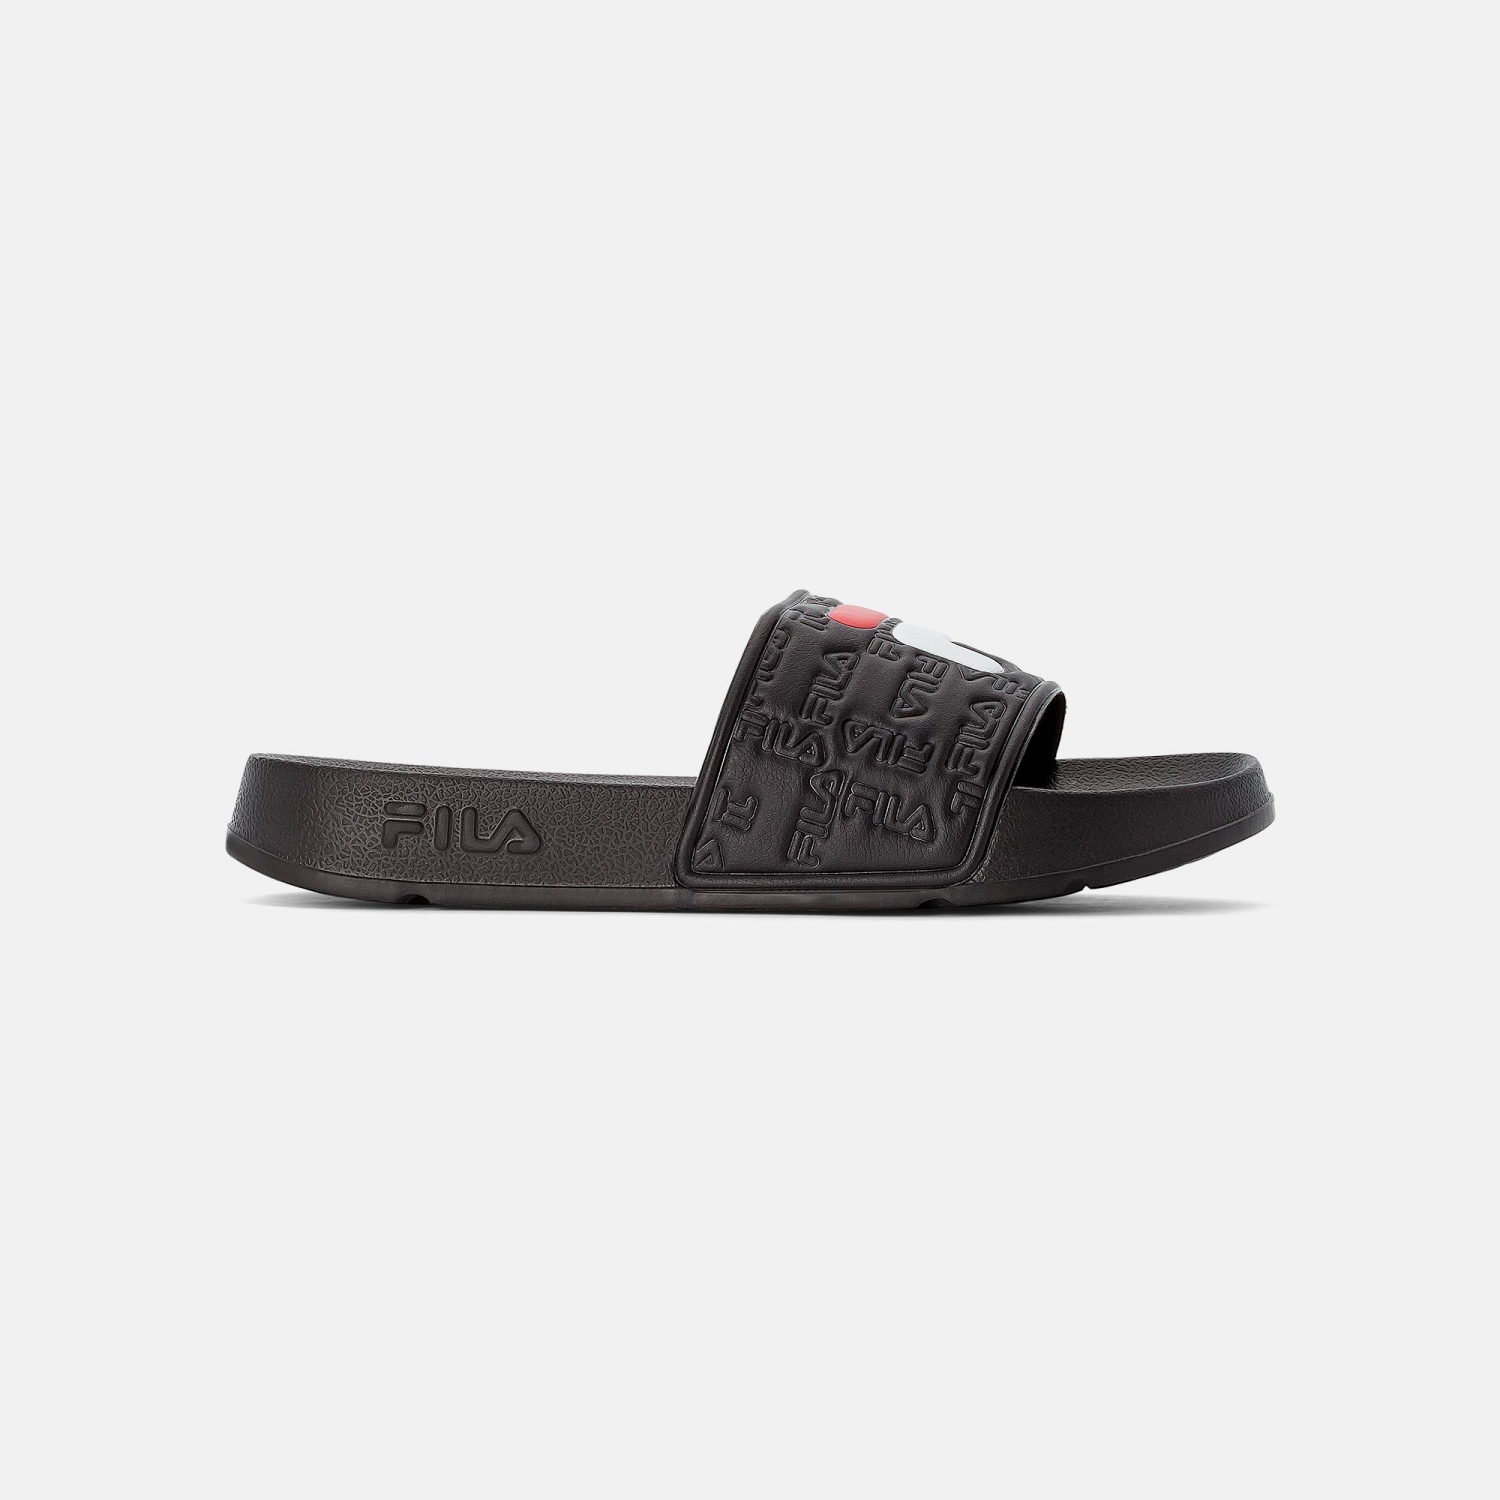 Fila Boardwalk Slipper 2.0 black Bild 1